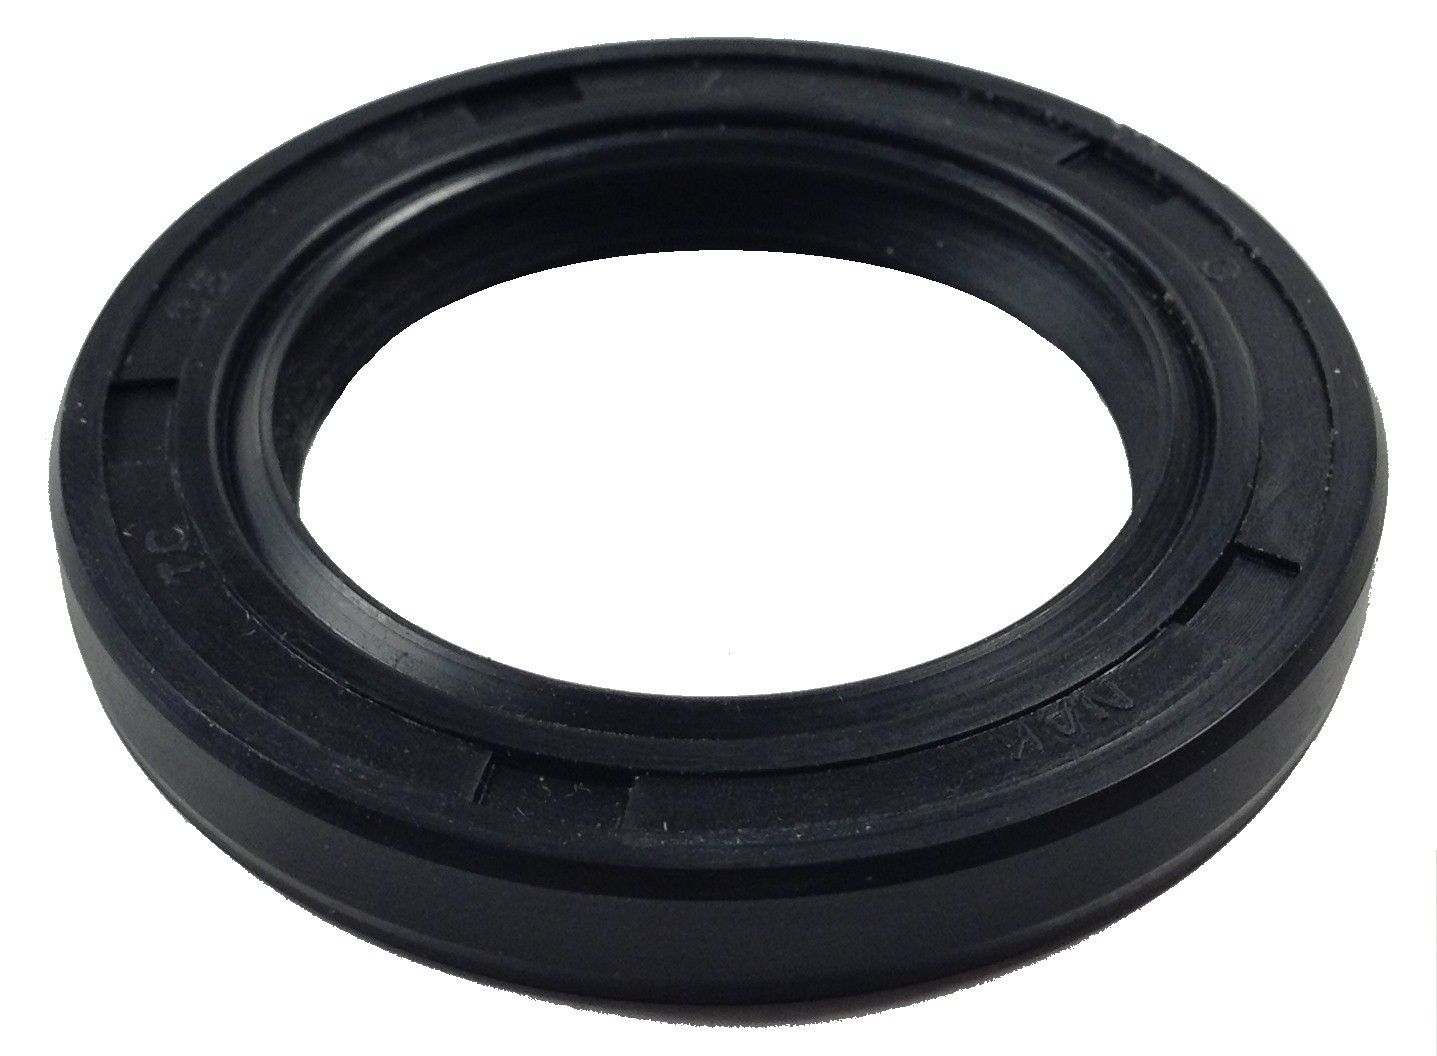 POWERTRAIN COMPONENTS (PTC) - Manual Trans Input Shaft Seal - PTC PT223535